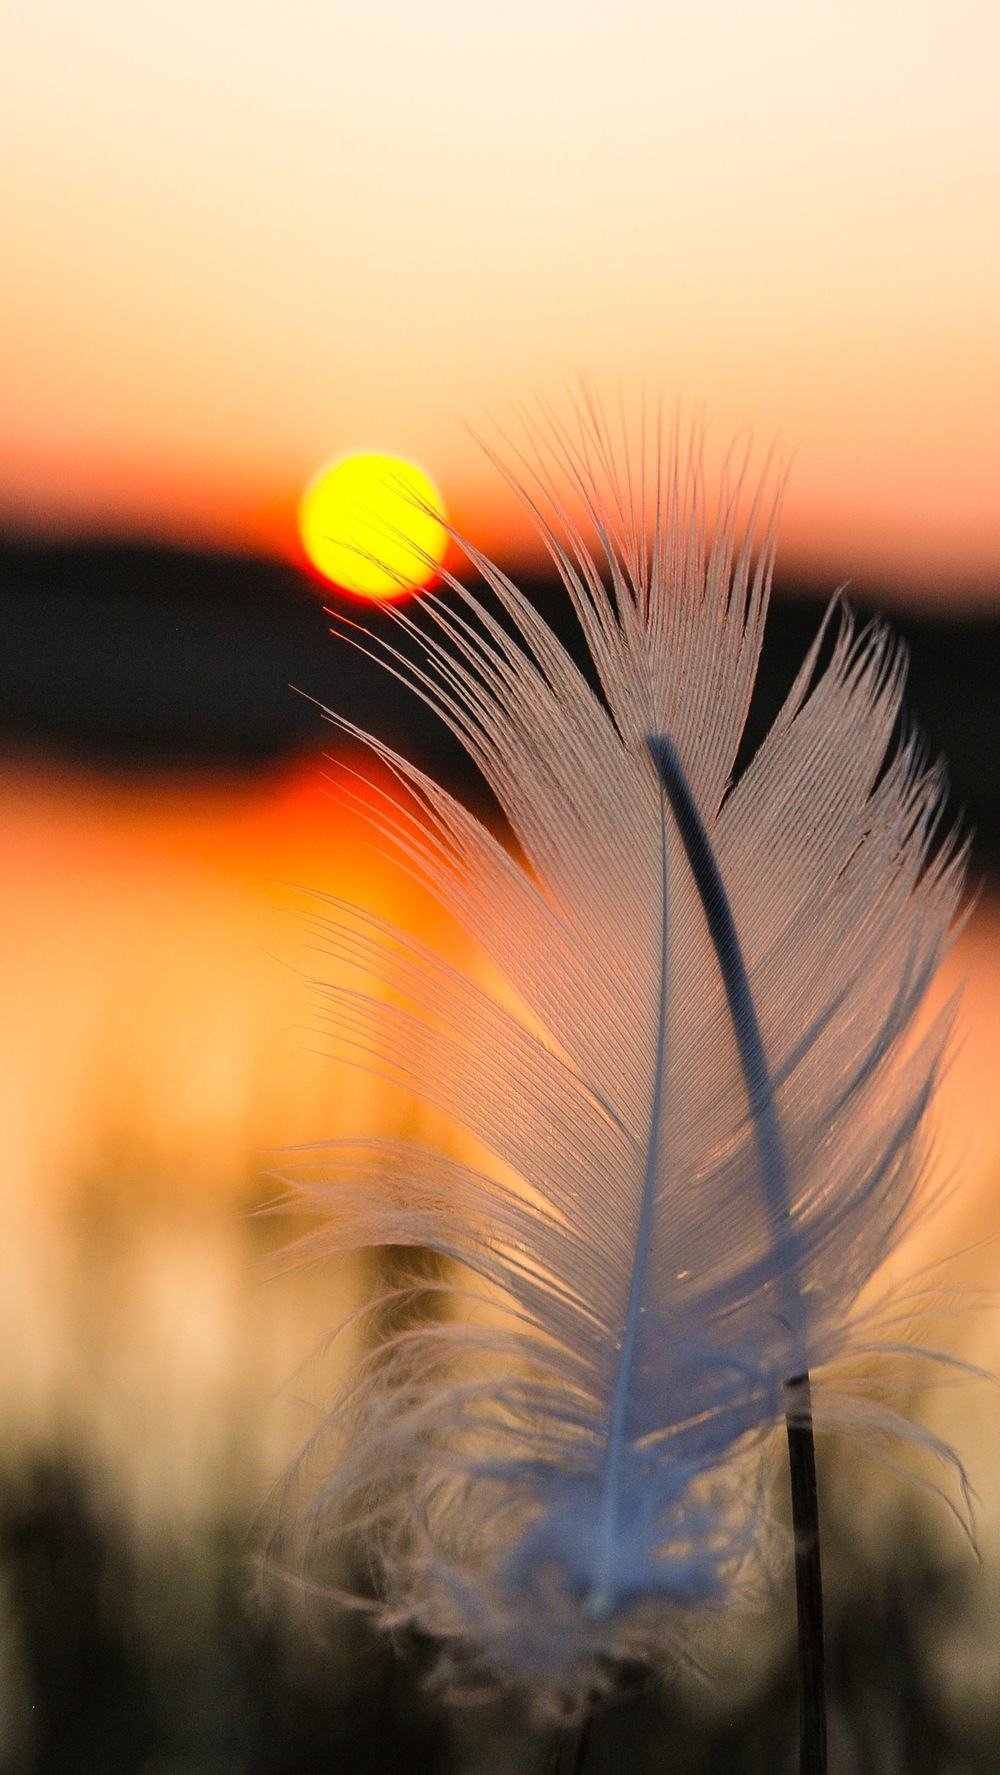 Golden Feather. Free Wallpaper